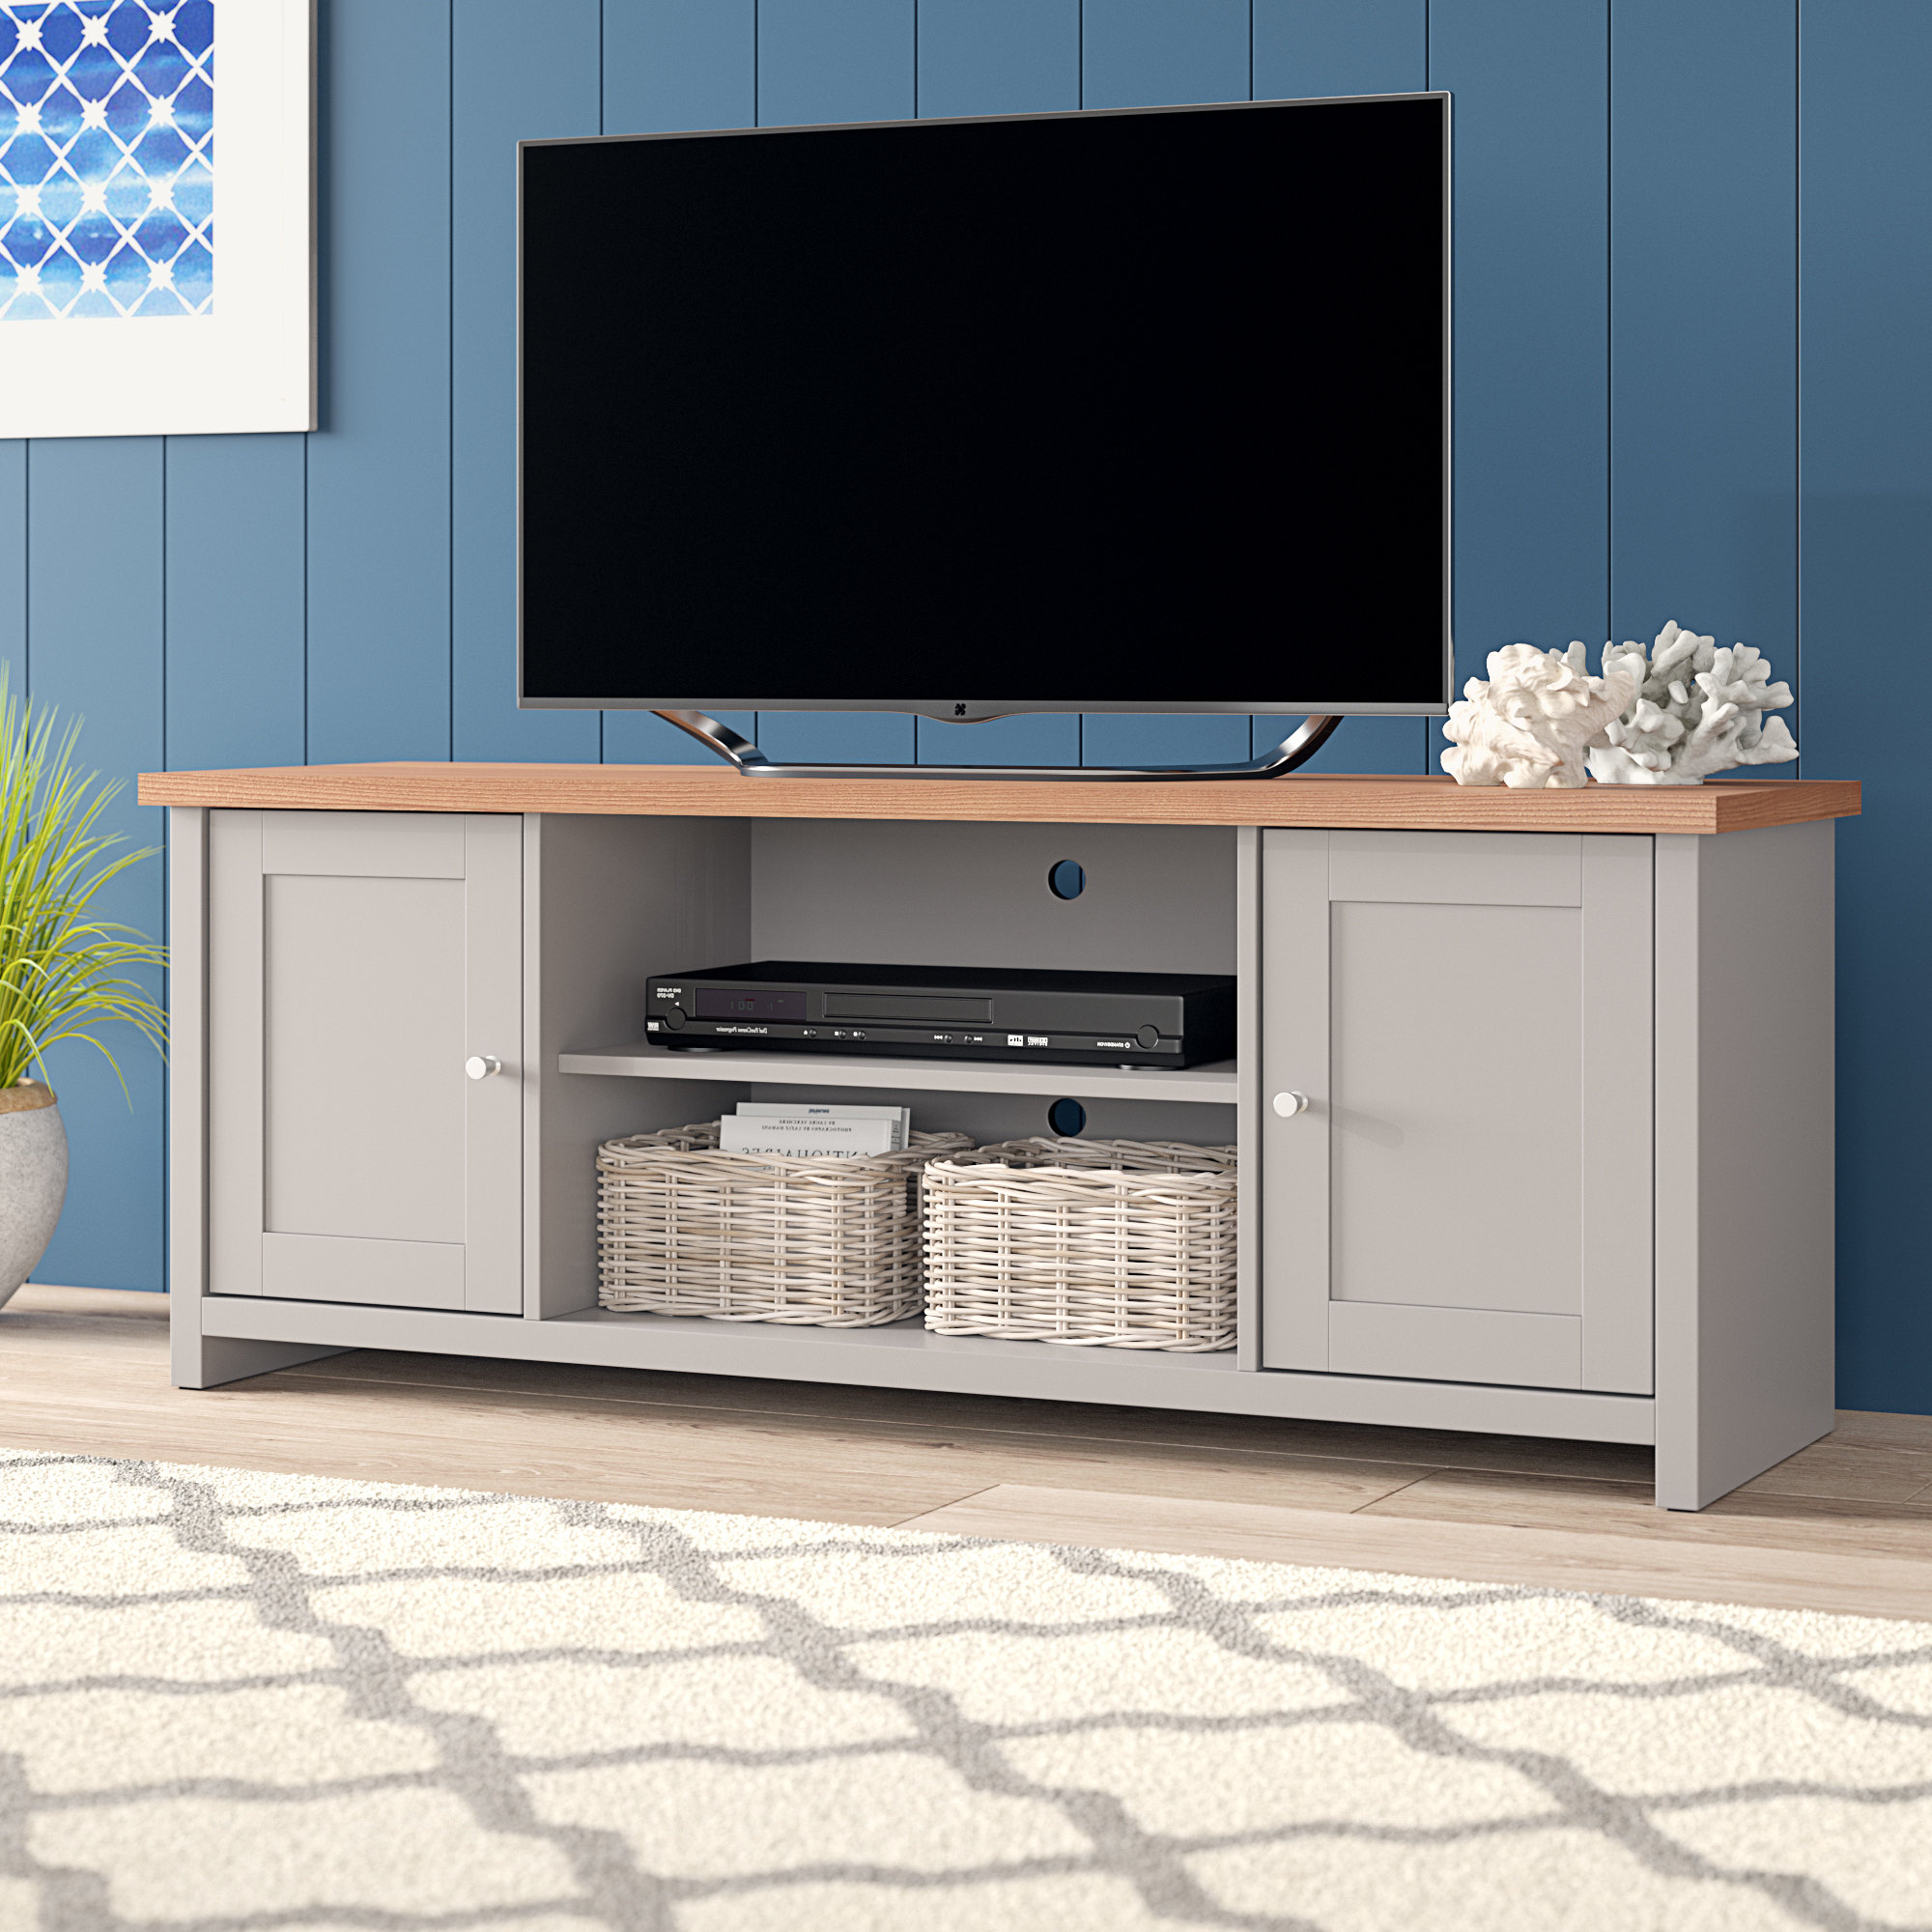 Siena Tv Stand | Wayfair.co.uk Intended For Valencia 70 Inch Tv Stands (Gallery 7 of 20)